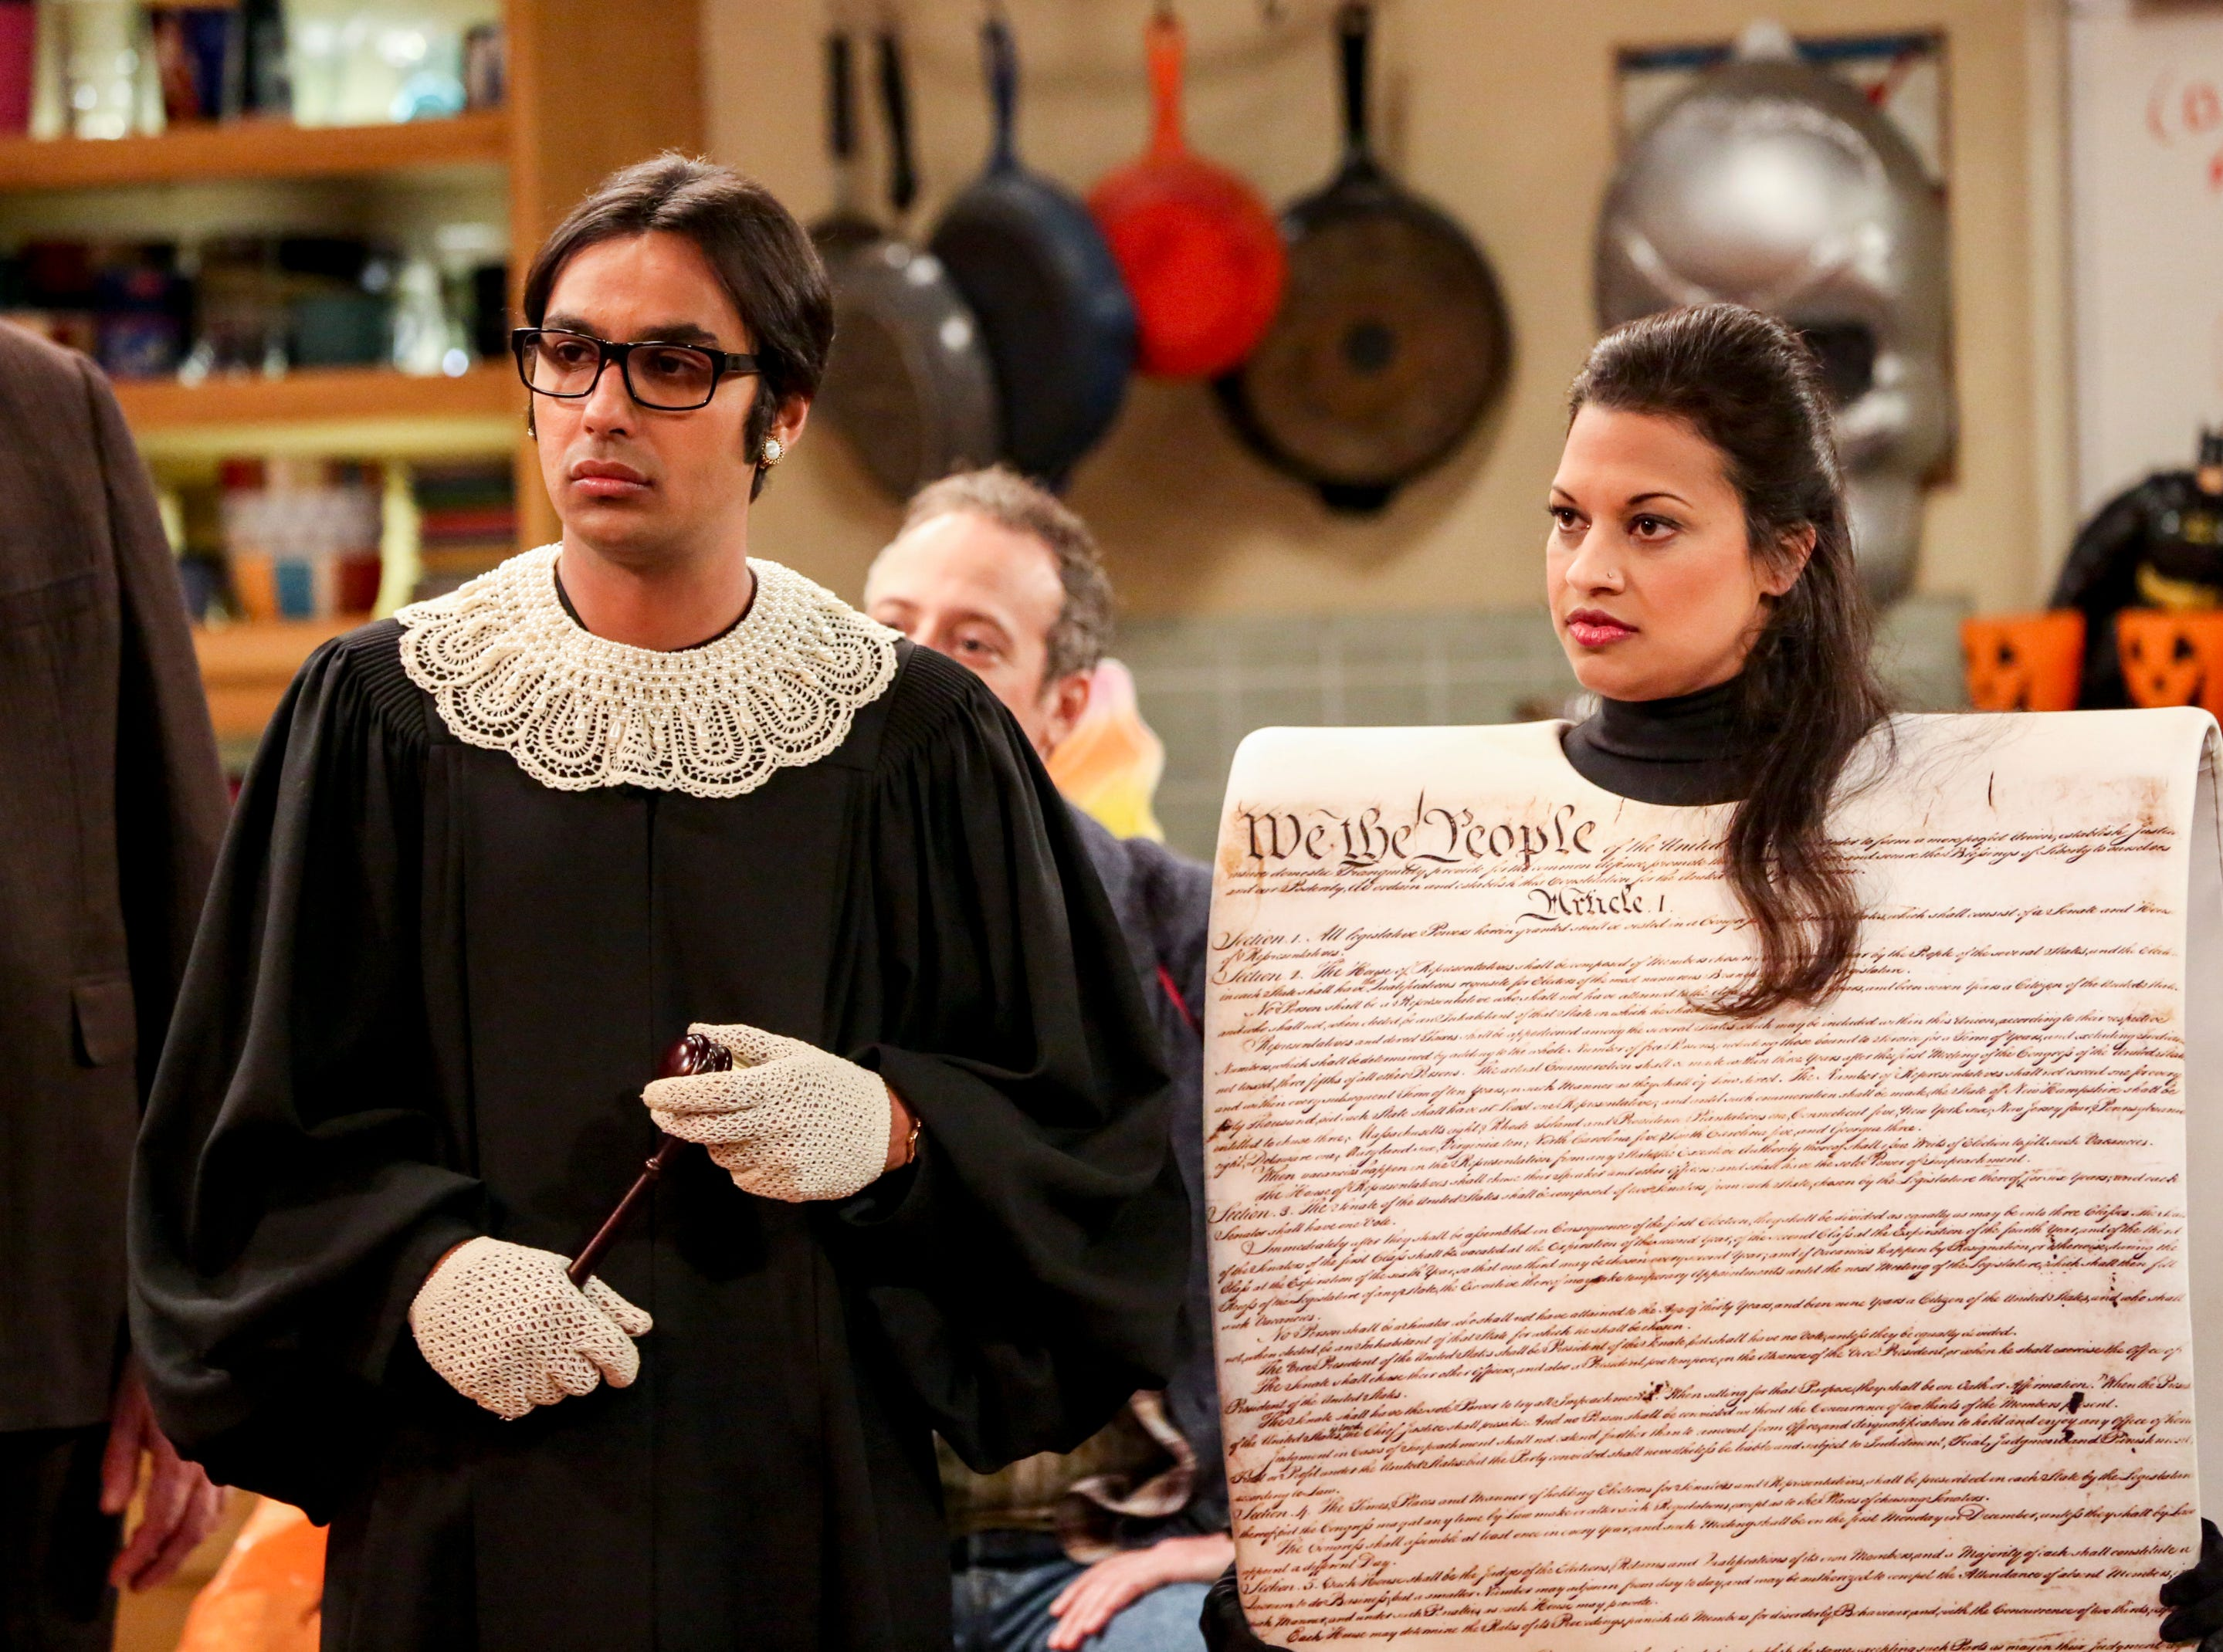 Rajesh Koothrappali (Kunal Nayyar) and Anu (Rati Gupta) go political with their costumes as Justice Ruth Bader Ginsberg with a life-size Constitution.